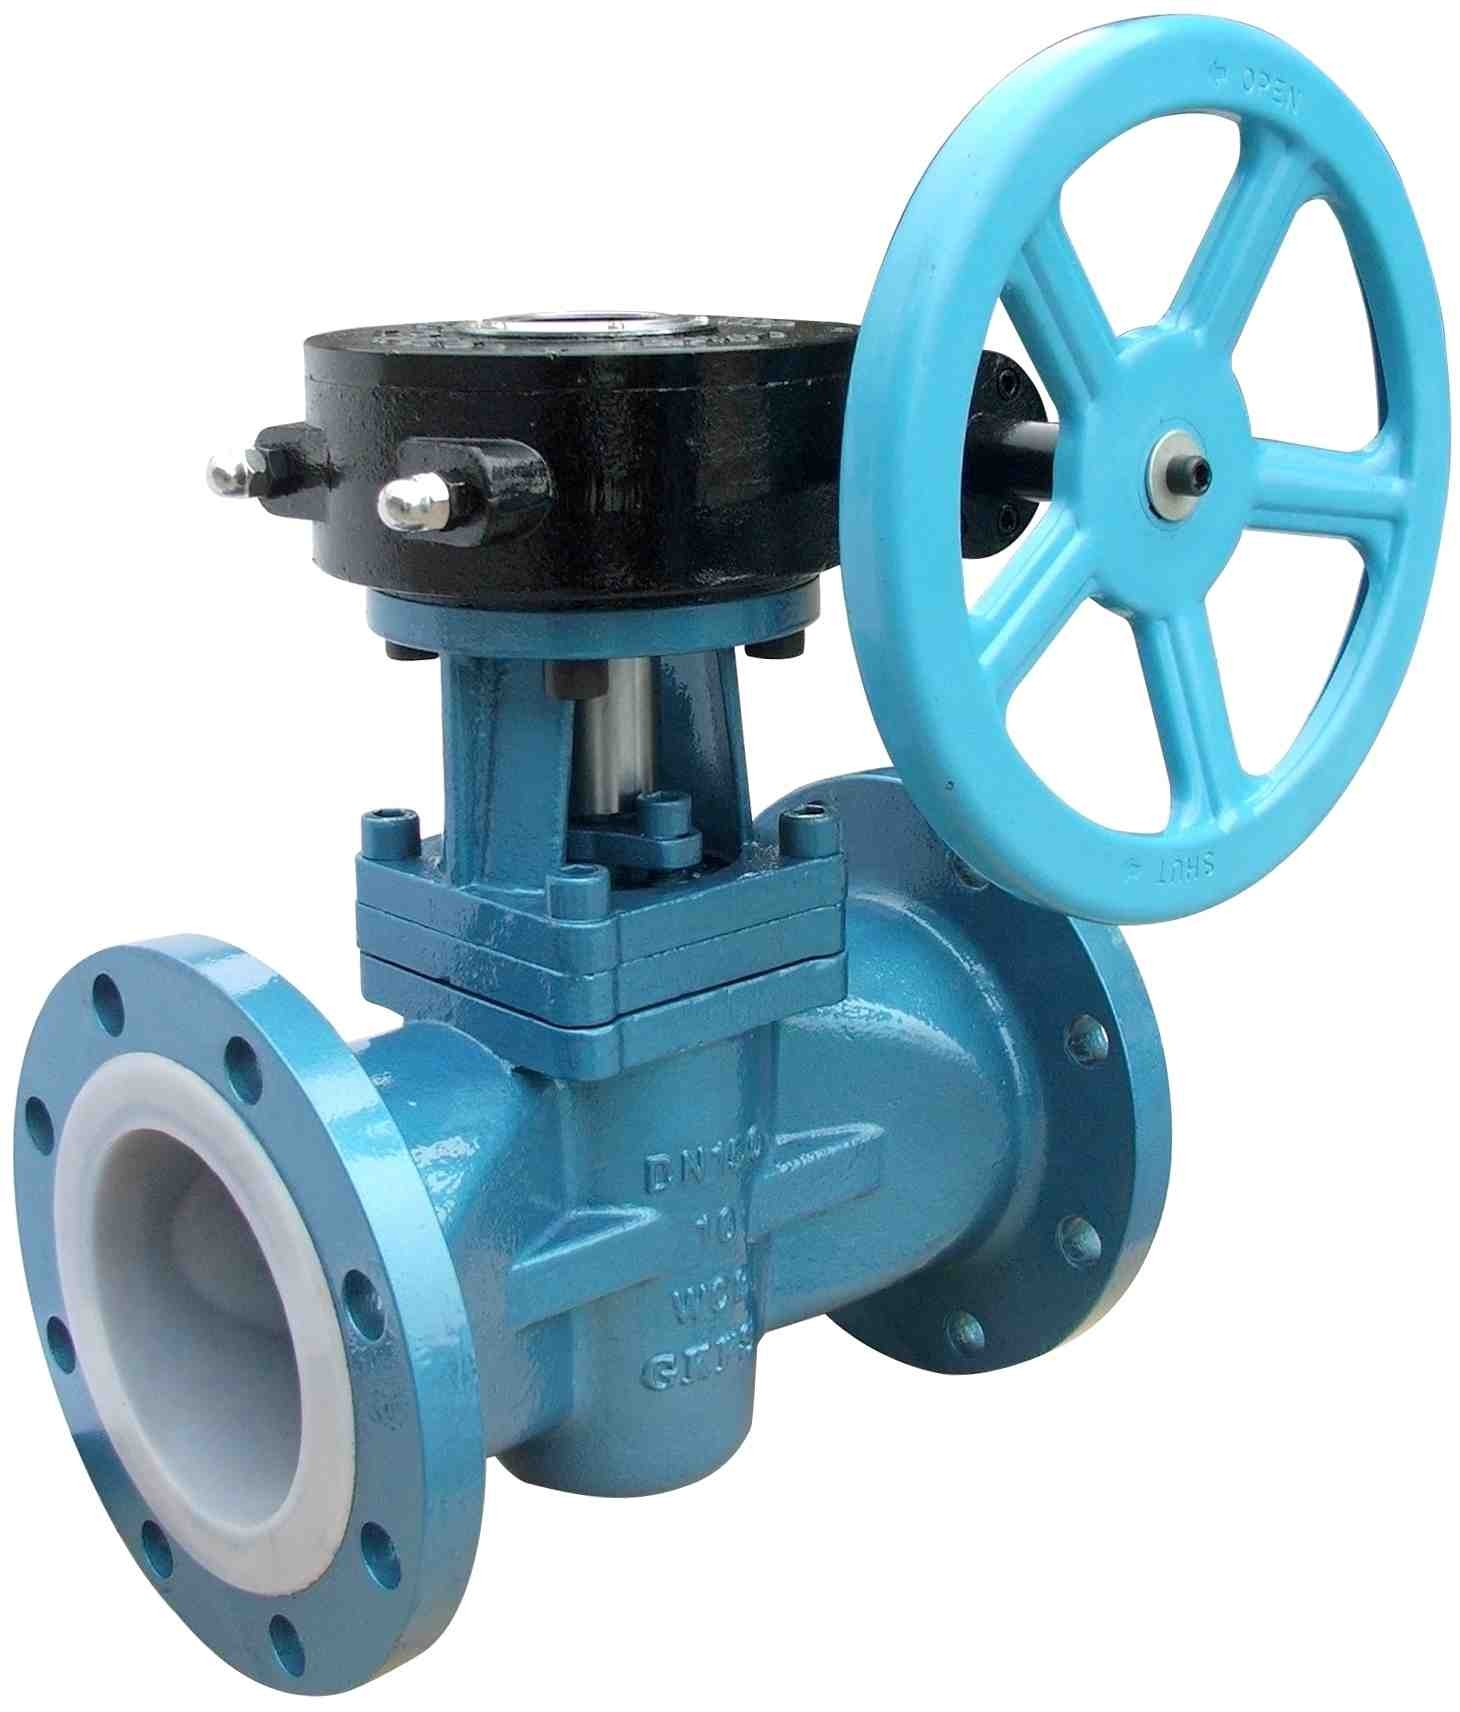 Soft Sealing Gas Lubricated  Plug Valve PN160 , Electric Or Pneumatic Plug Valve